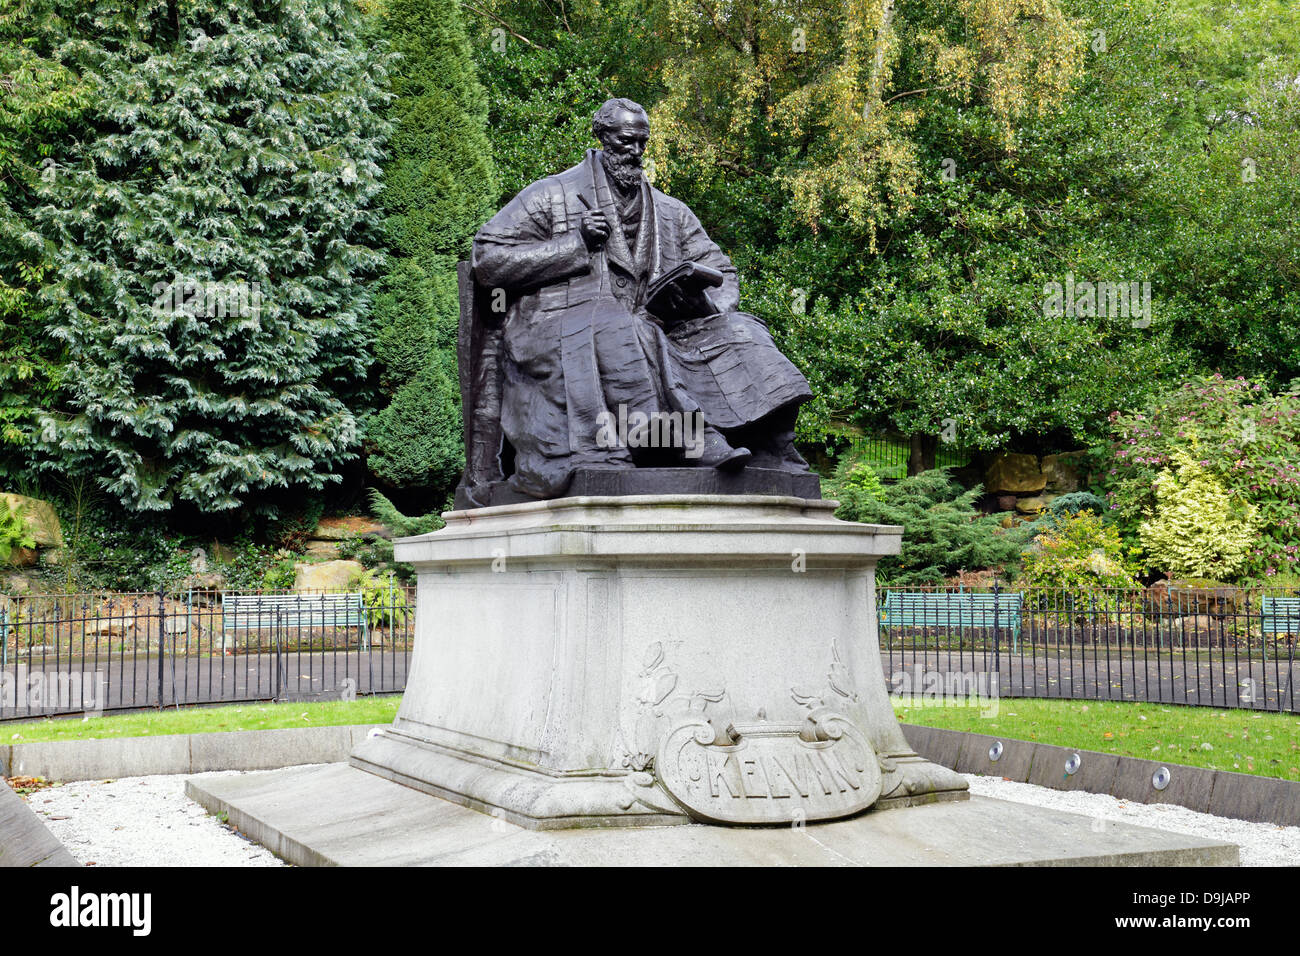 A bronze monument of scientist Sir William Thomson, Baron Kelvin of Largs, Kelvingrove Park, Glasgow, Scotland - Stock Image